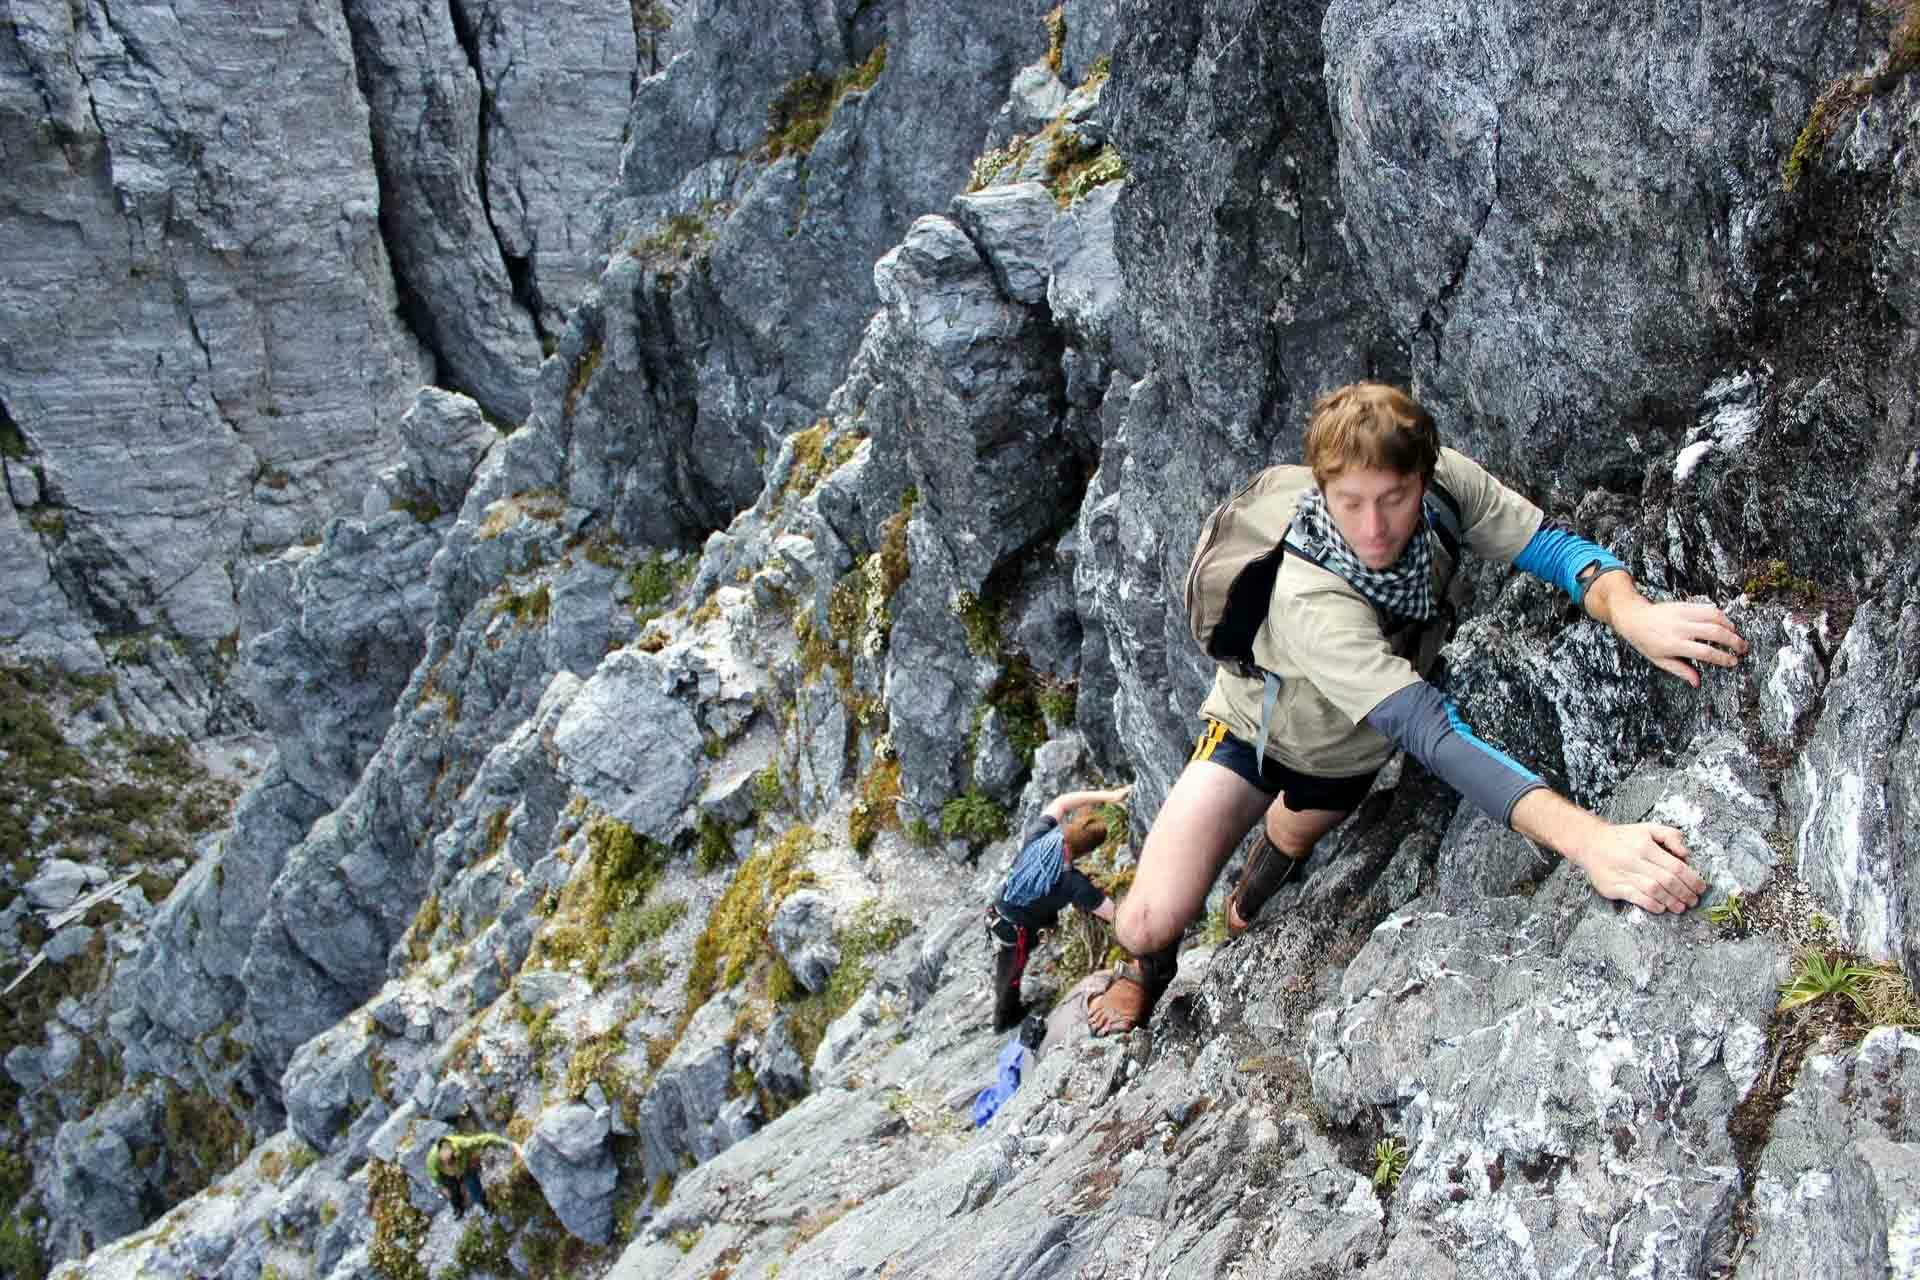 Eastern Arthurs, nick stacey, best multi day hikes in tasmania, rock scramble, toe shoes